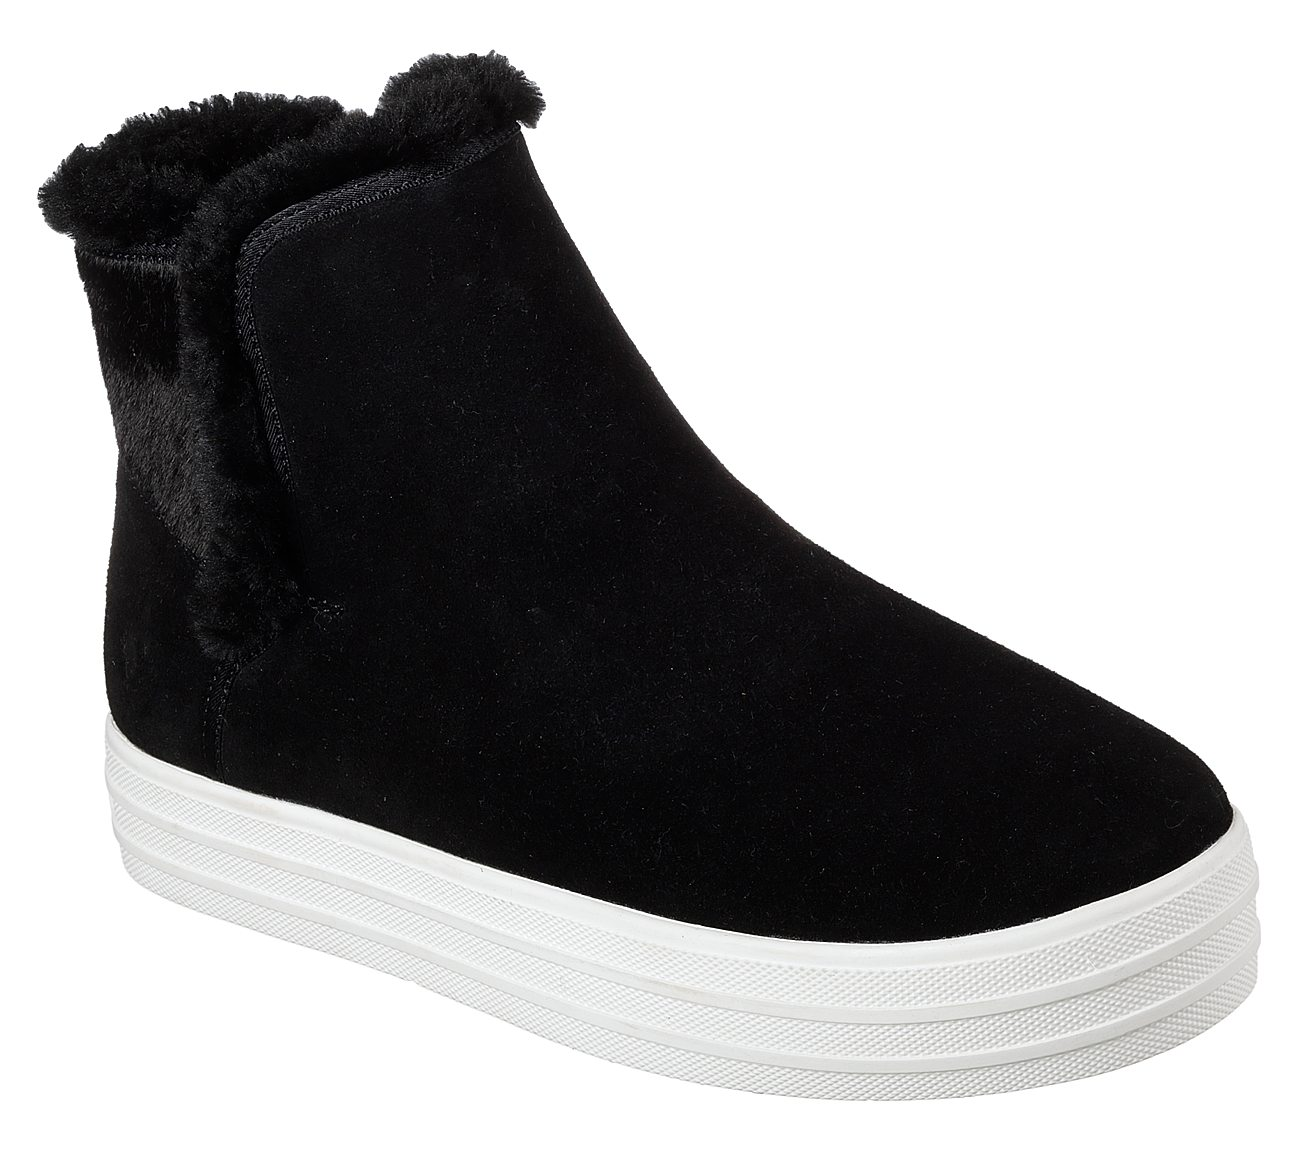 Skechers Double Up Over The Edge, Botines para Mujer